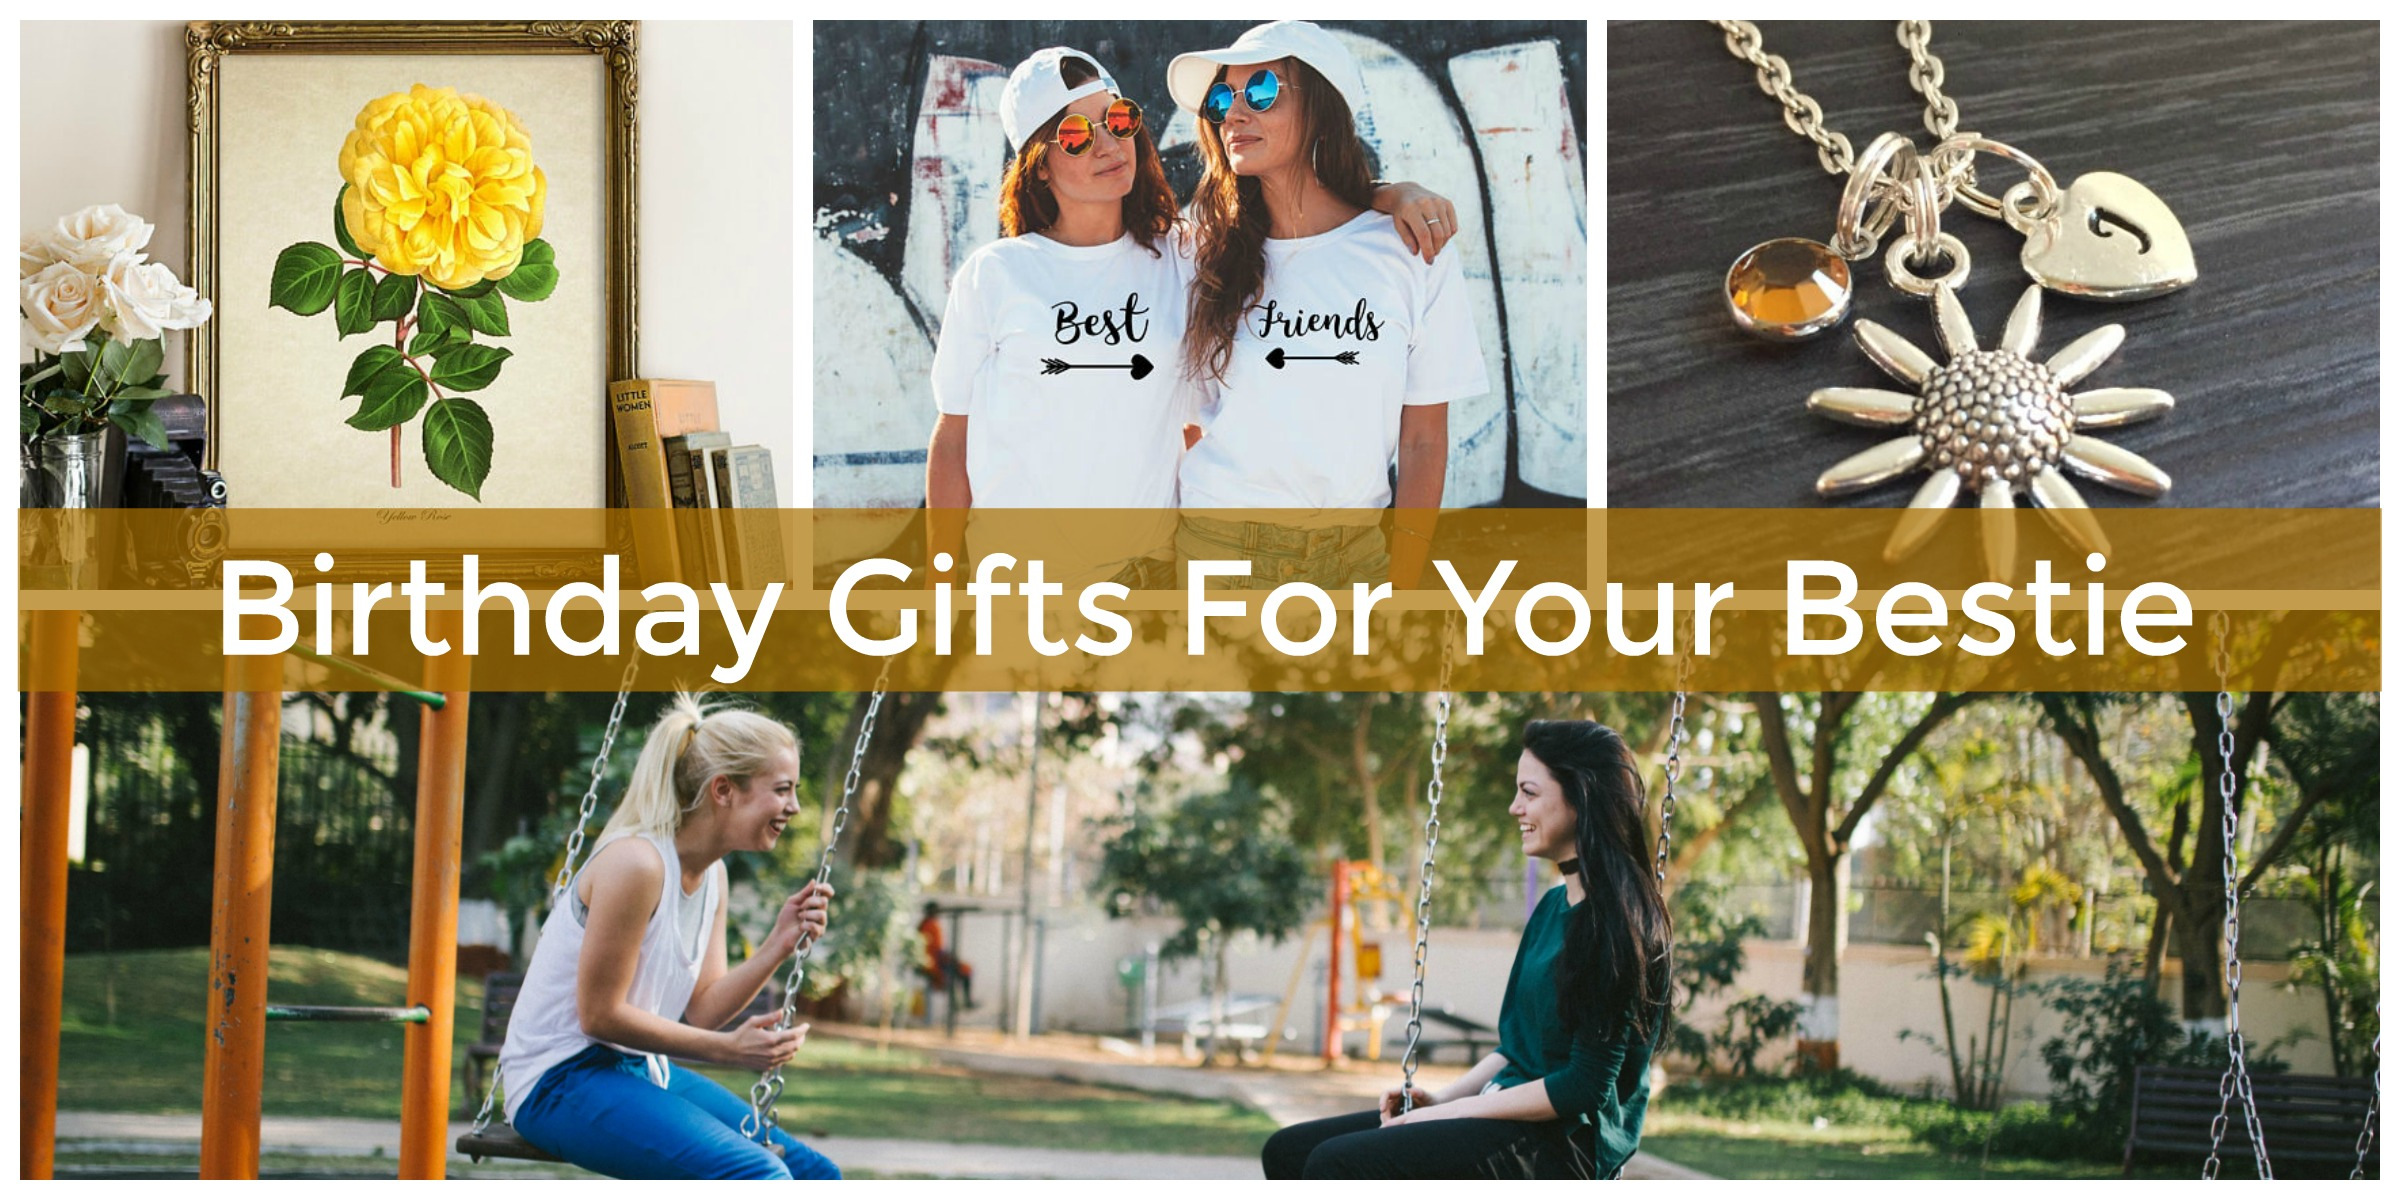 Bday Gift Ideas For Your Best Friend Make Her Birthday Special